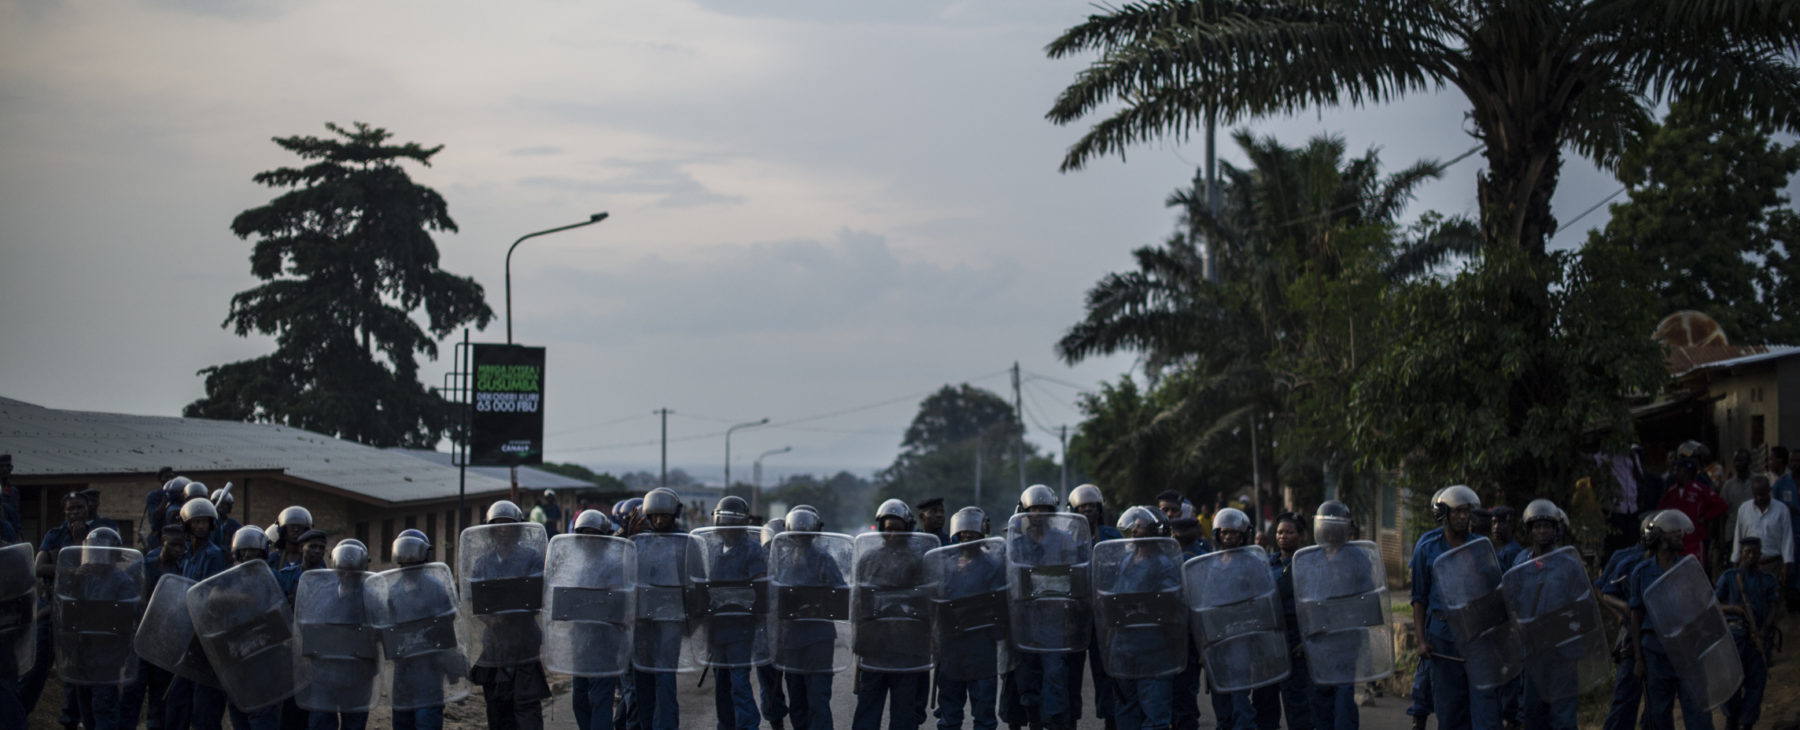 Crimes against humanity in Burundi: what now?